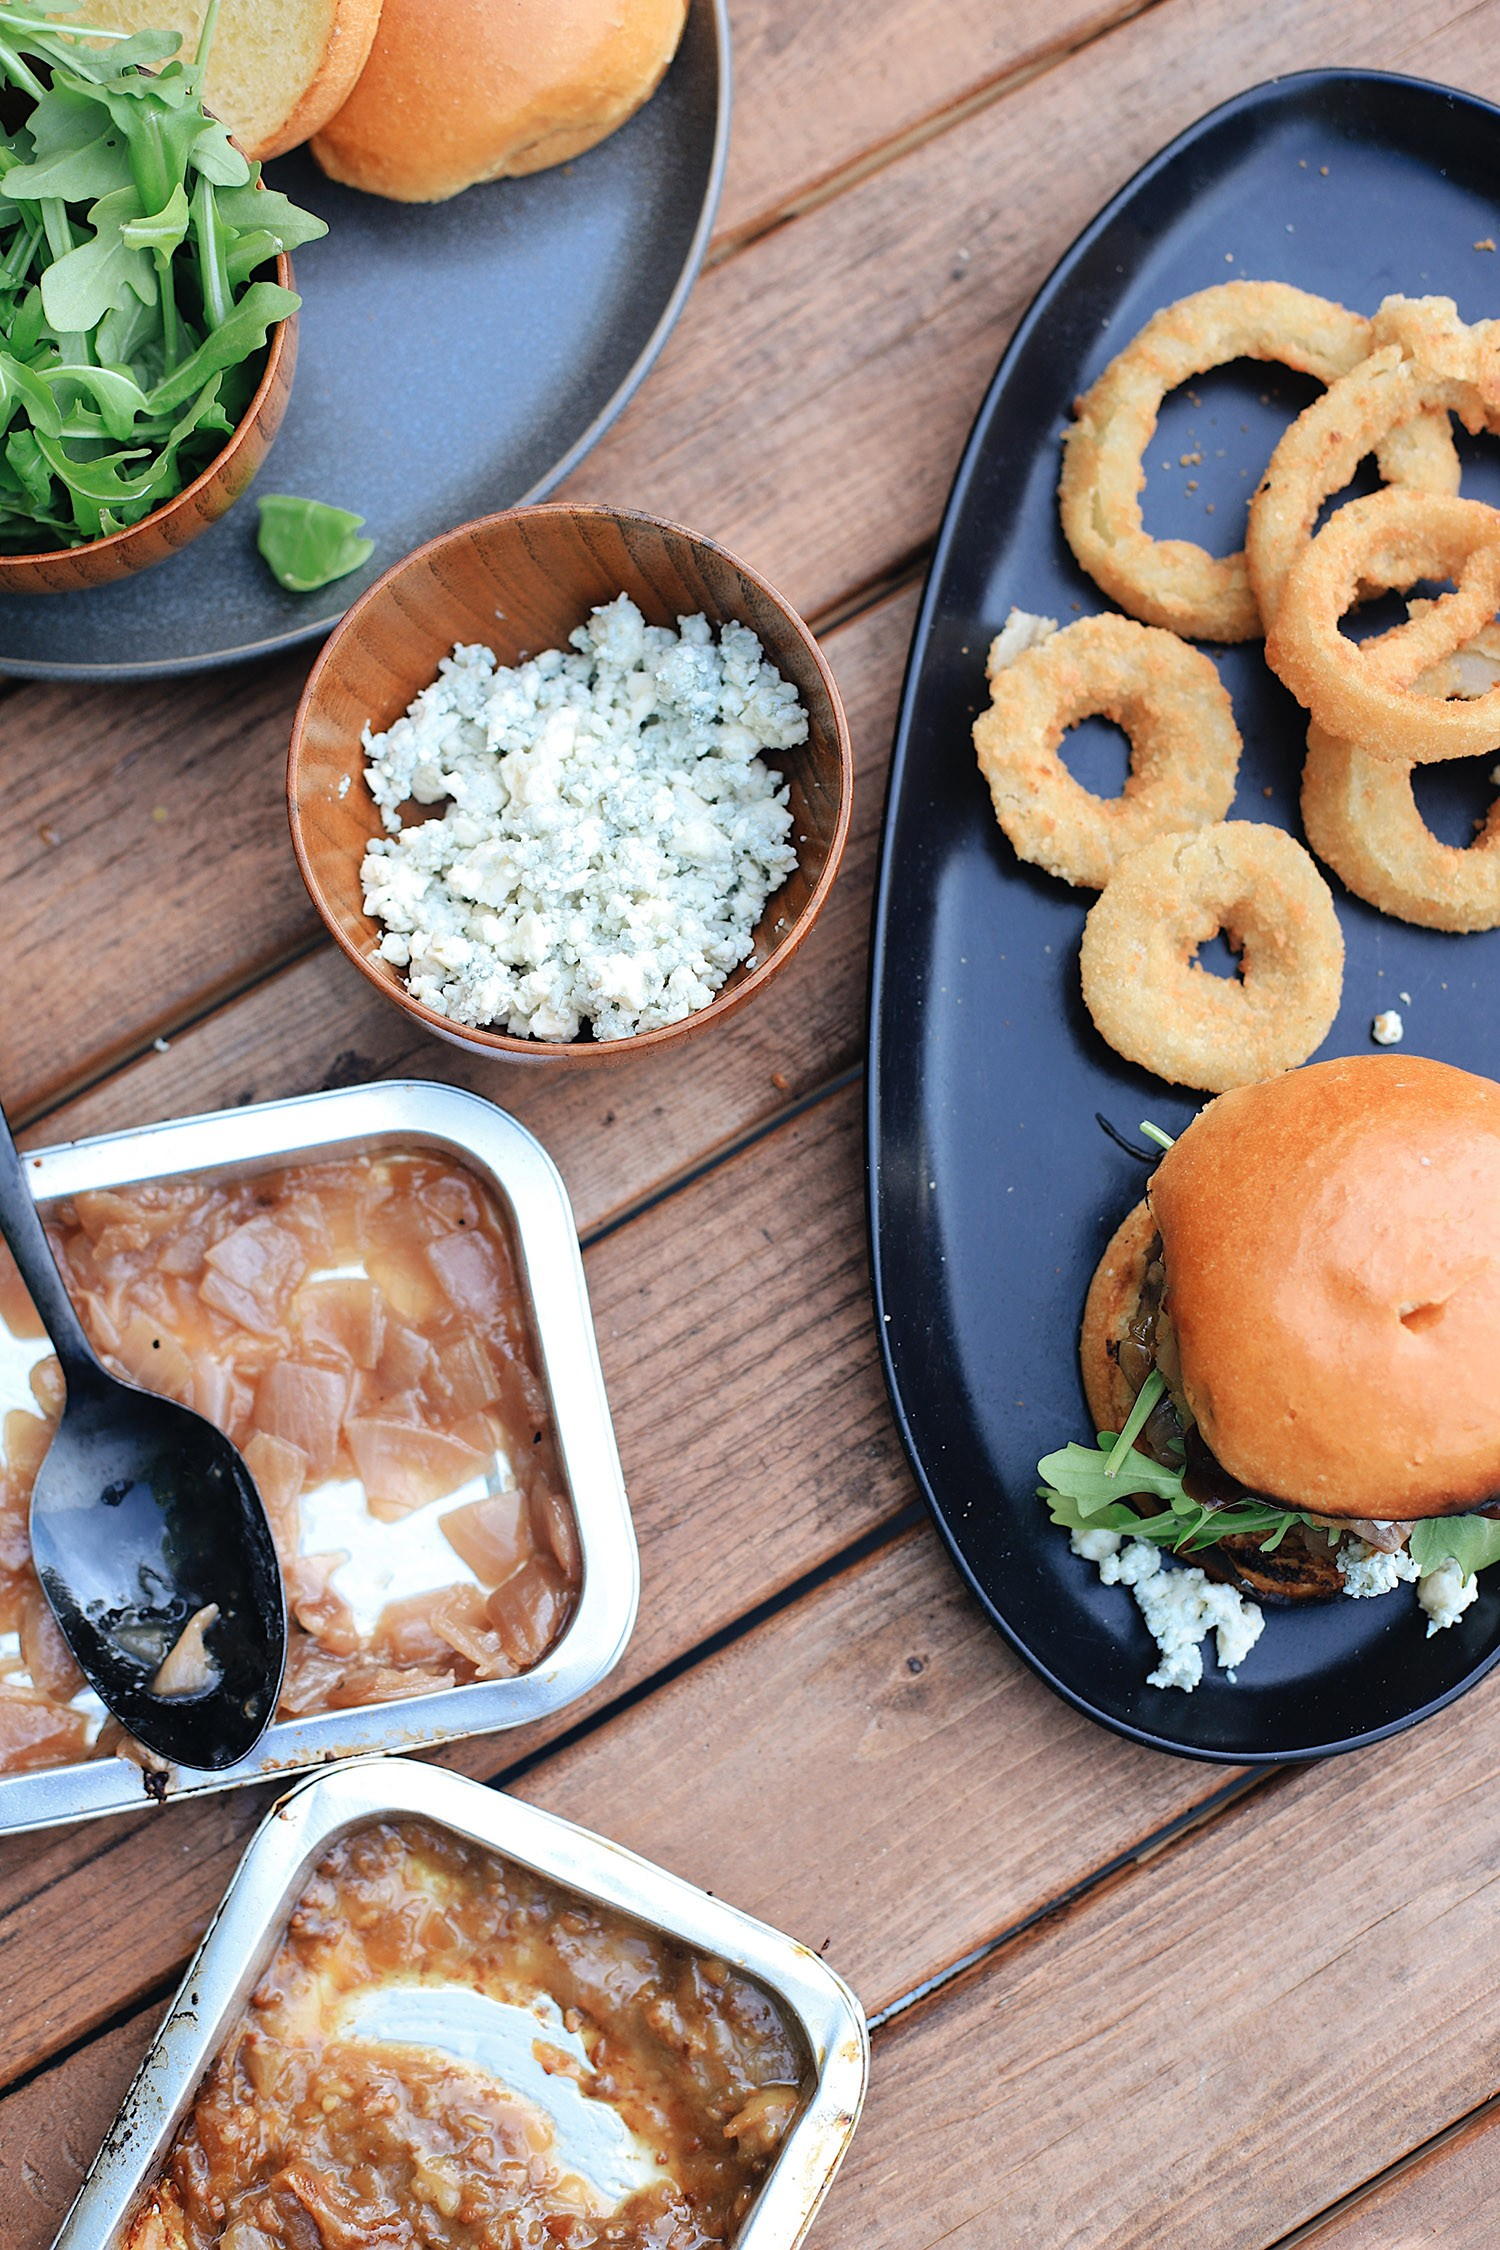 BBQ Bacon Blue Burger for a Tasty Backyard Barbecue. Not your average burger! Juicy beef burgers seasoned with a the perfect amount of spice, topped with smoked bacon jam, sweet bourbon onions, arugula, blue cheese, onion rings, BBQ sauce and a buttery grilled bun! | BBQ Burger by popular Florida lifestyle blog, Fresh Mommy Blog: image of a BBQ Burger with bacon and blue cheese, onion rings, grilled onions, and bacon jam.